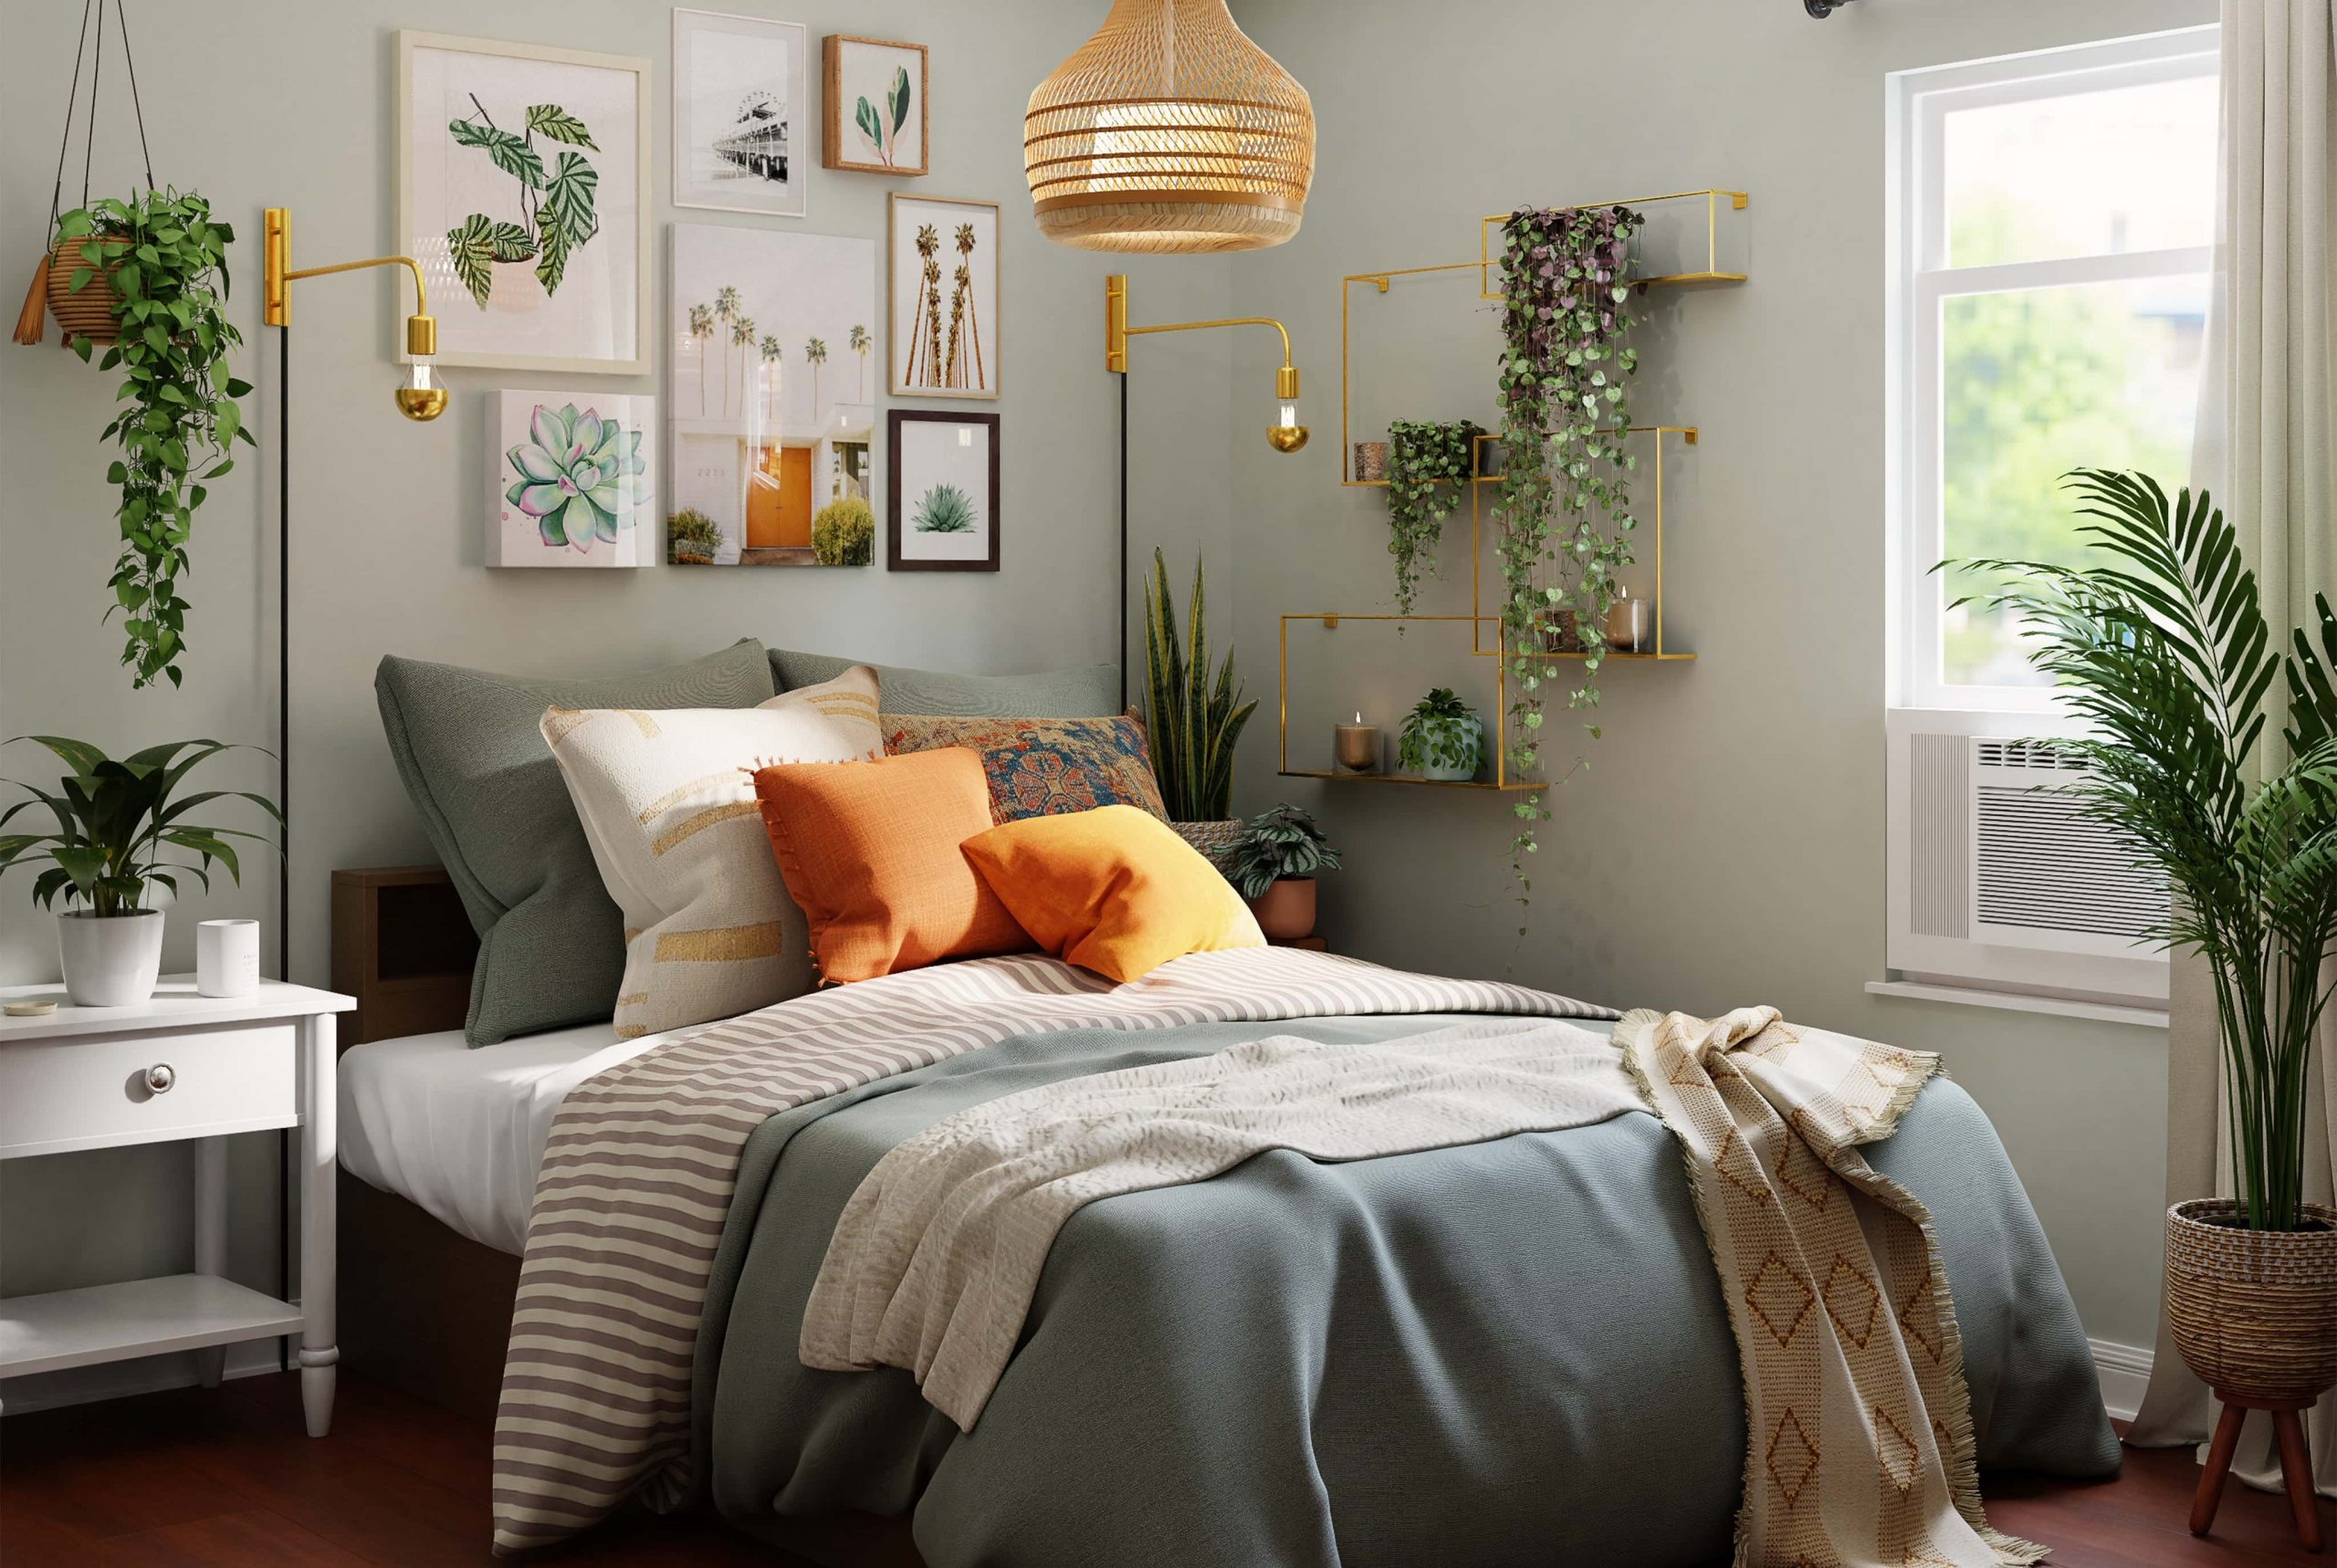 Why do homes in India have smaller bedrooms than living rooms?